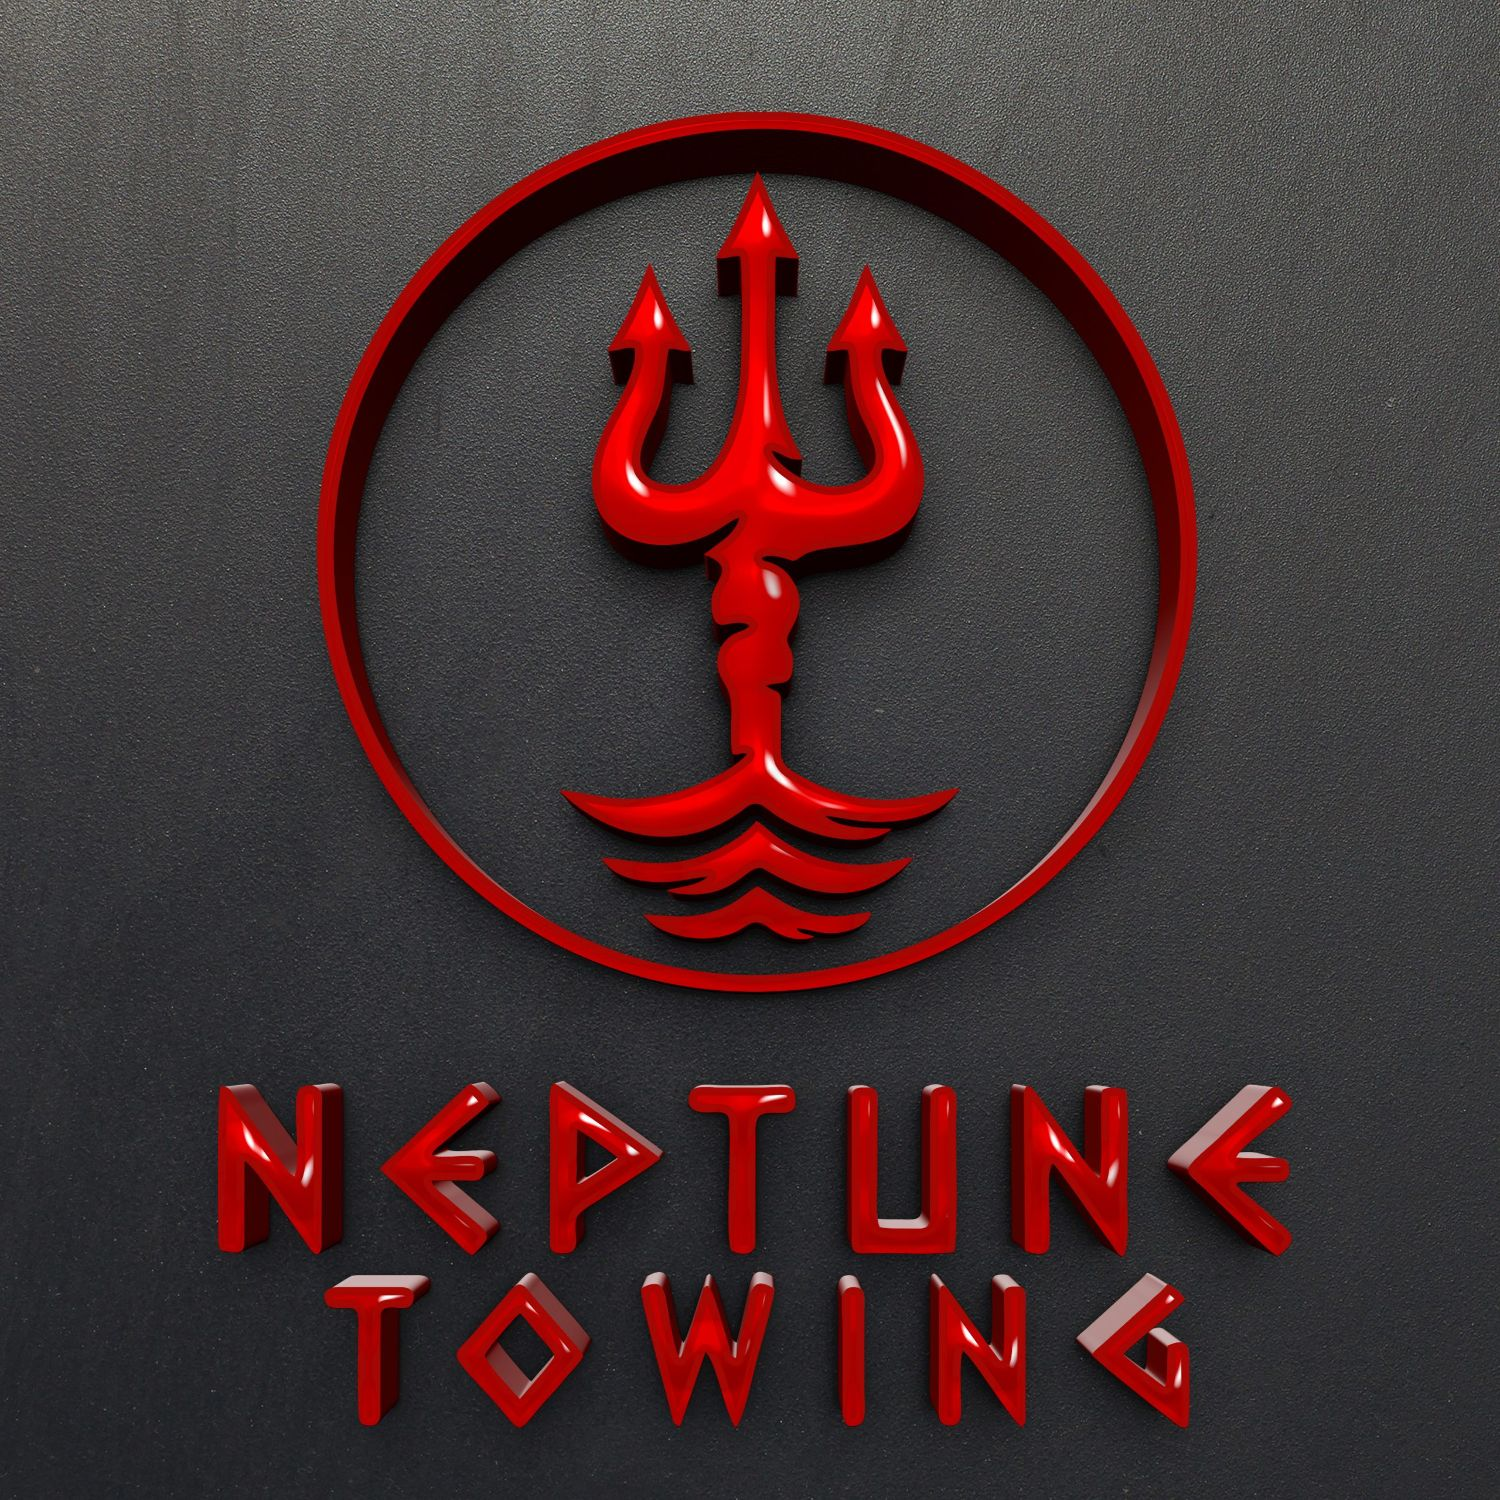 Neptune Towing Tulsa